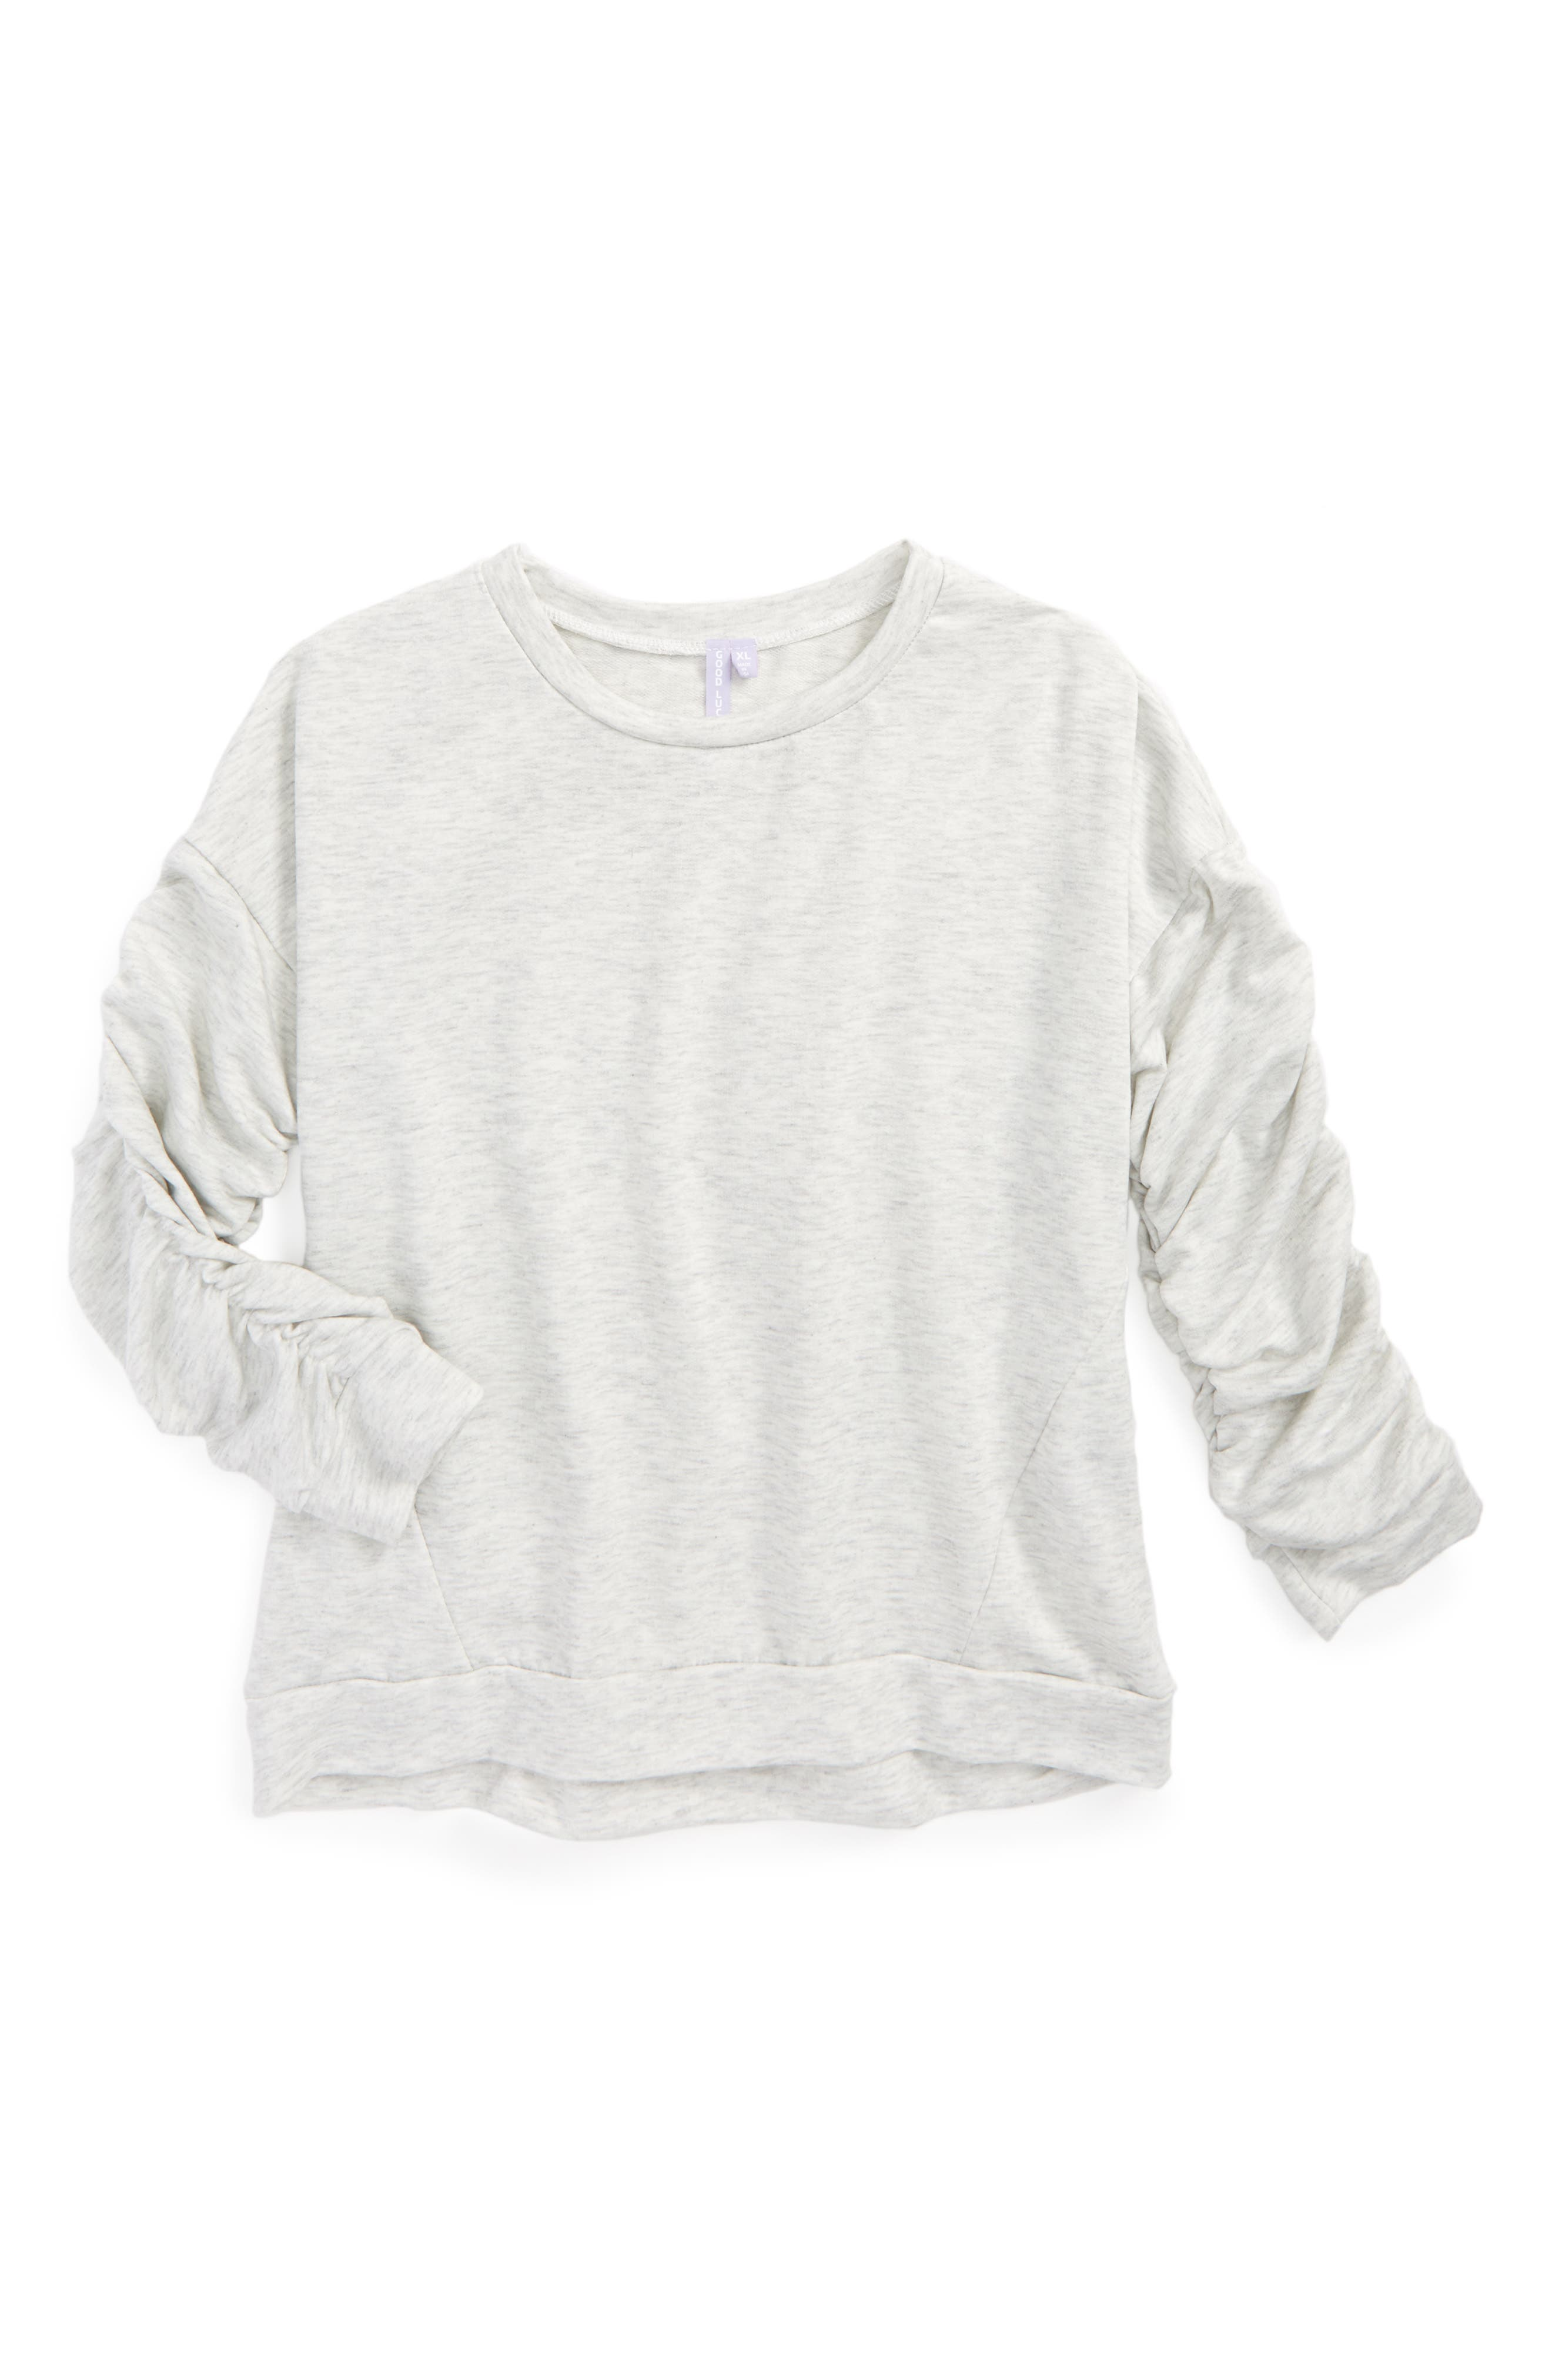 Ruched Sleeve Sweatshirt,                         Main,                         color, 063